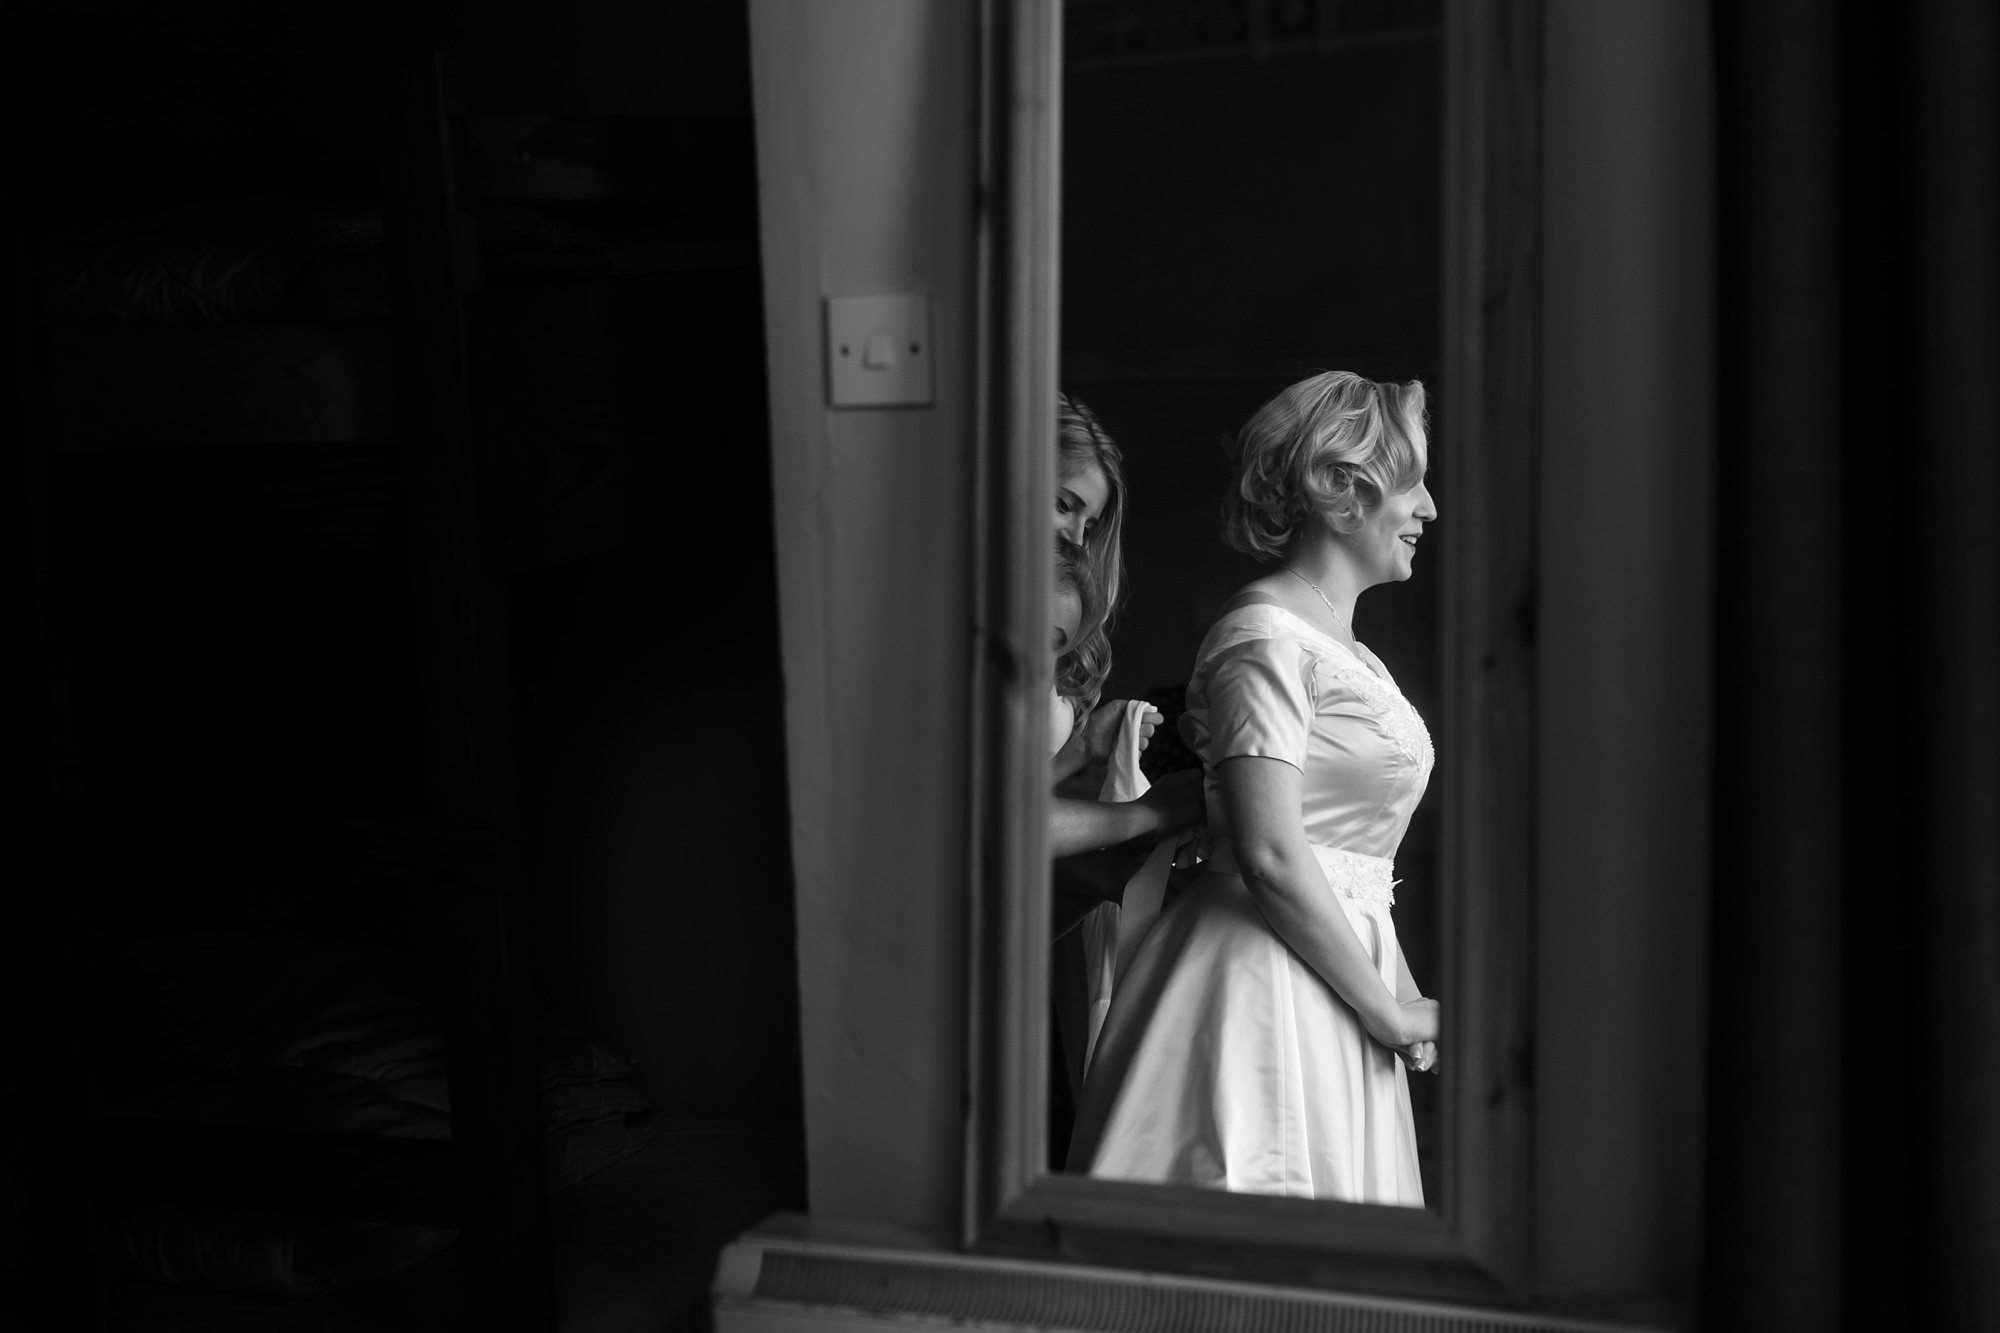 Reflection of bride being buttoned up in mirror Derwentwater Independent Hostel Wedding